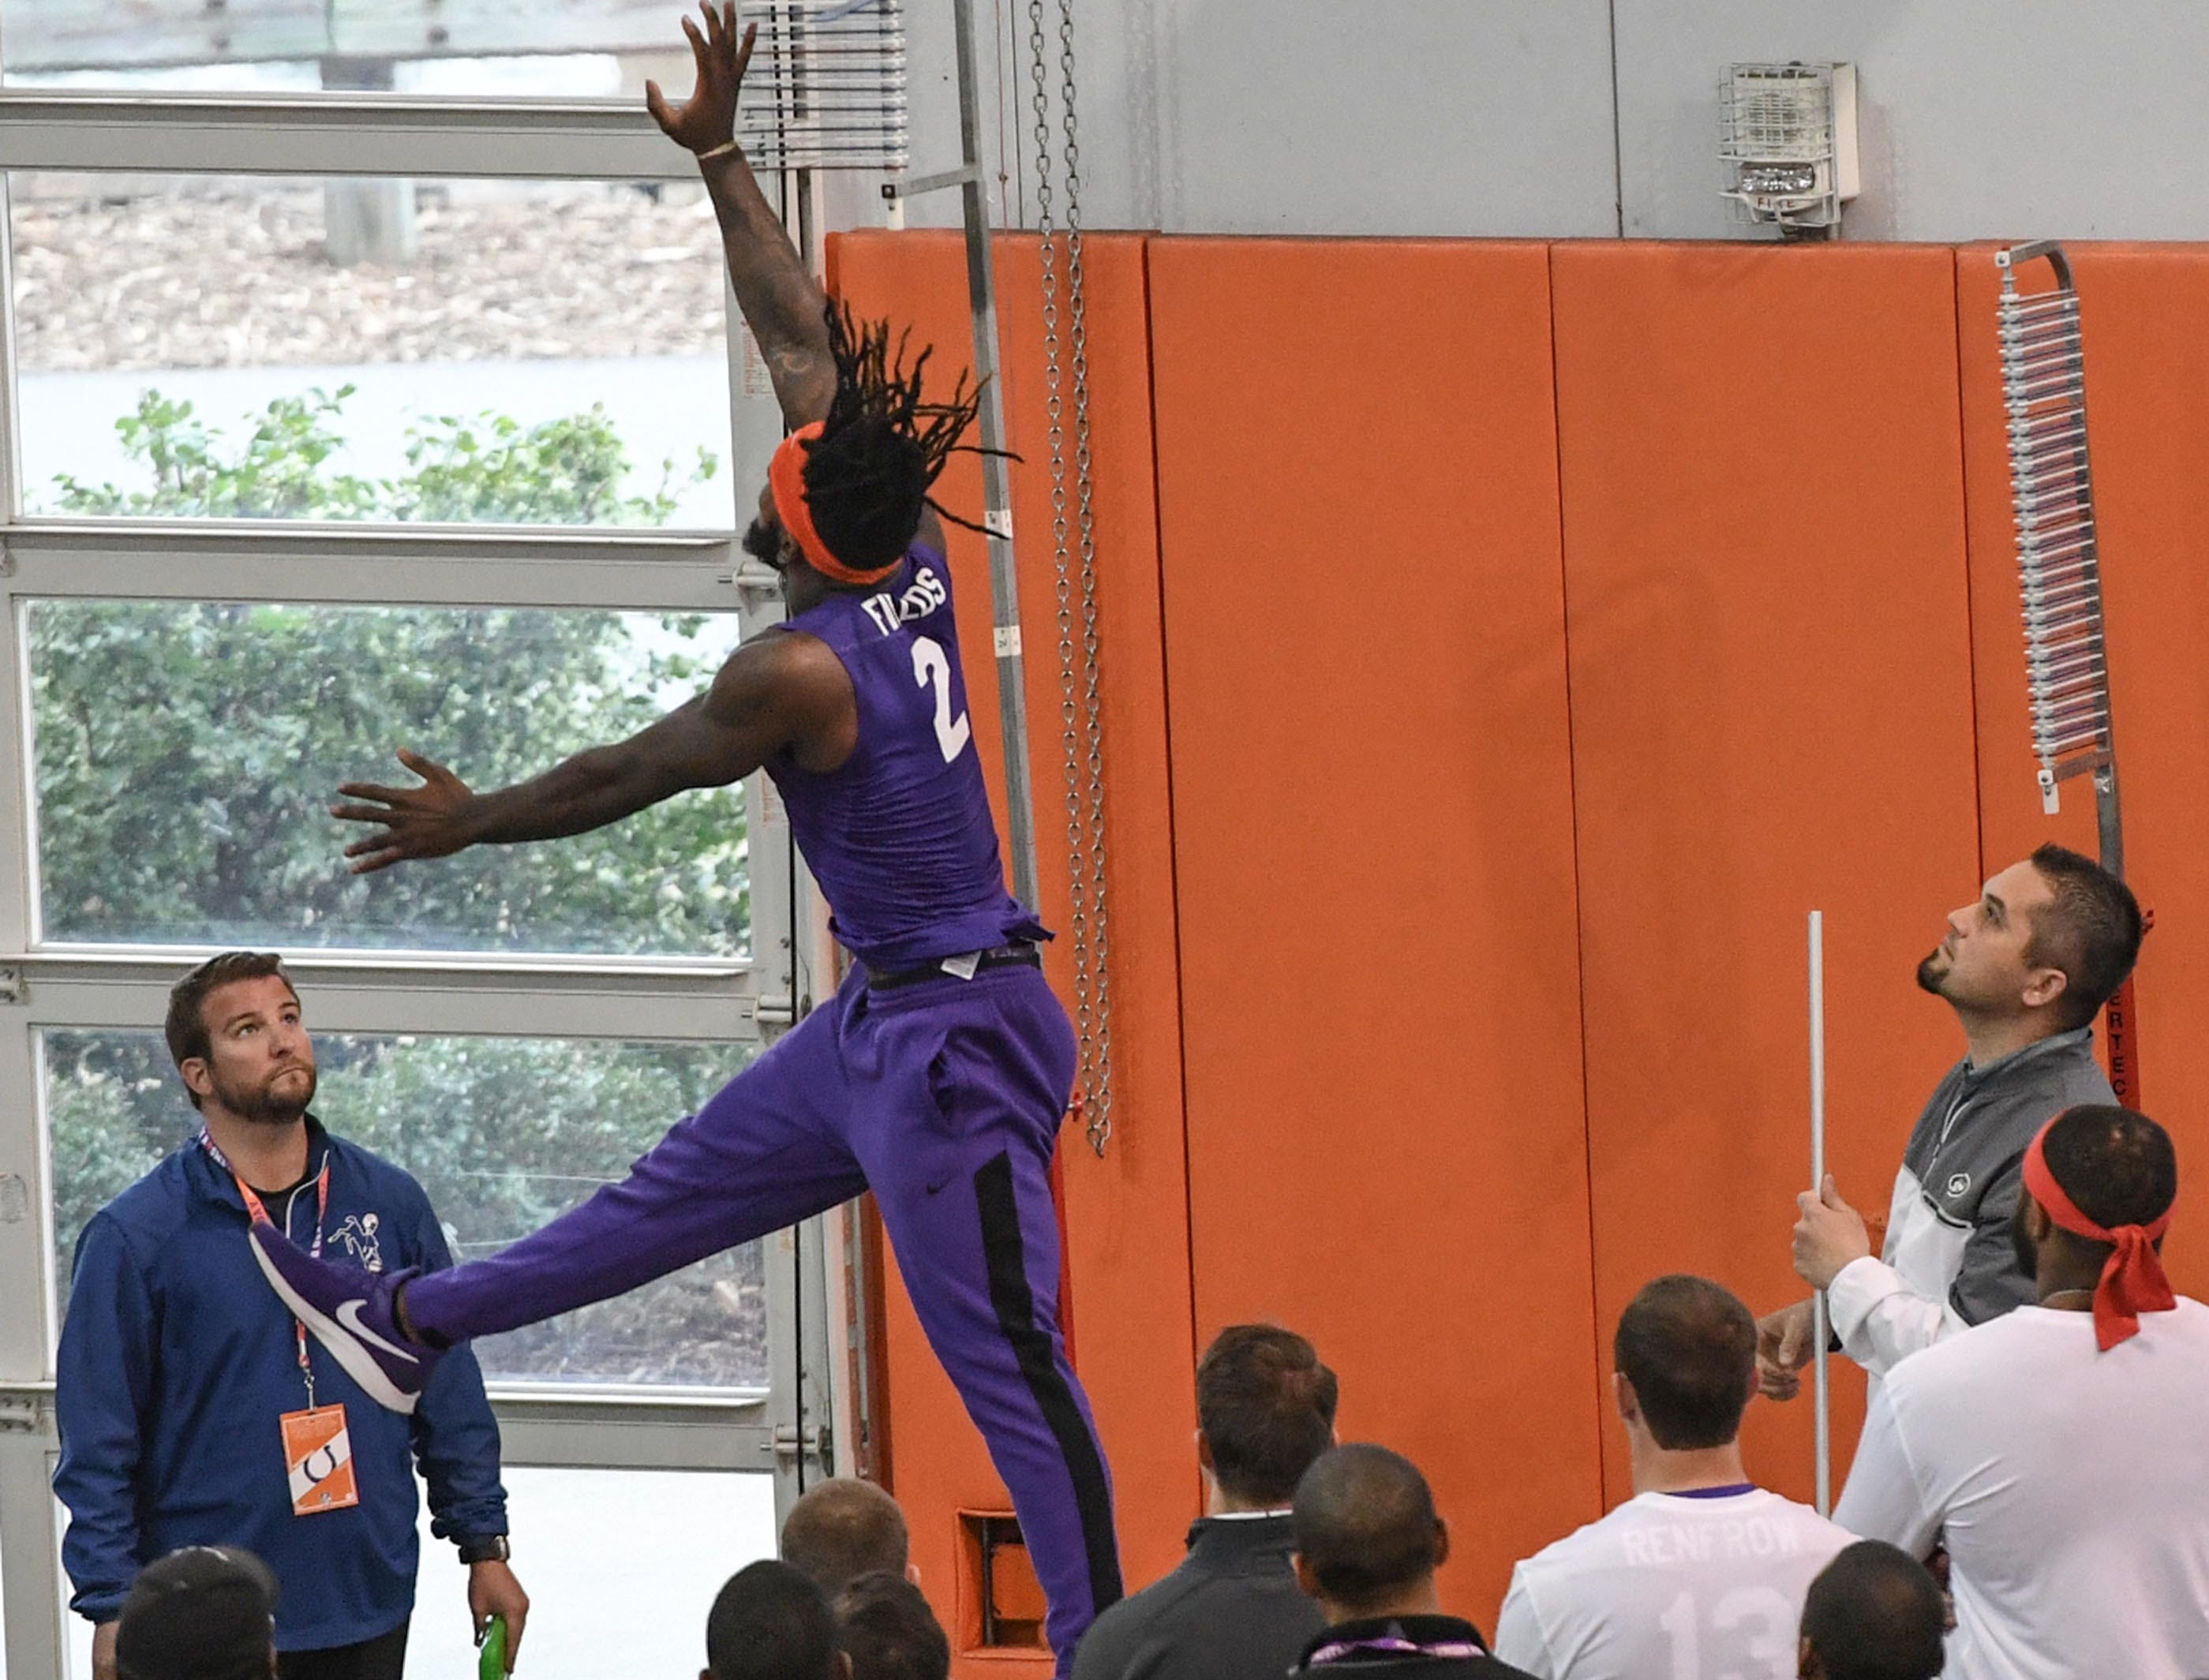 Cornerback Mark Field II leaps 31.5 inches in a vertical leap test during Clemson pro day at the Poe Indoor Facility in Clemson Thursday, March 14, 2019.